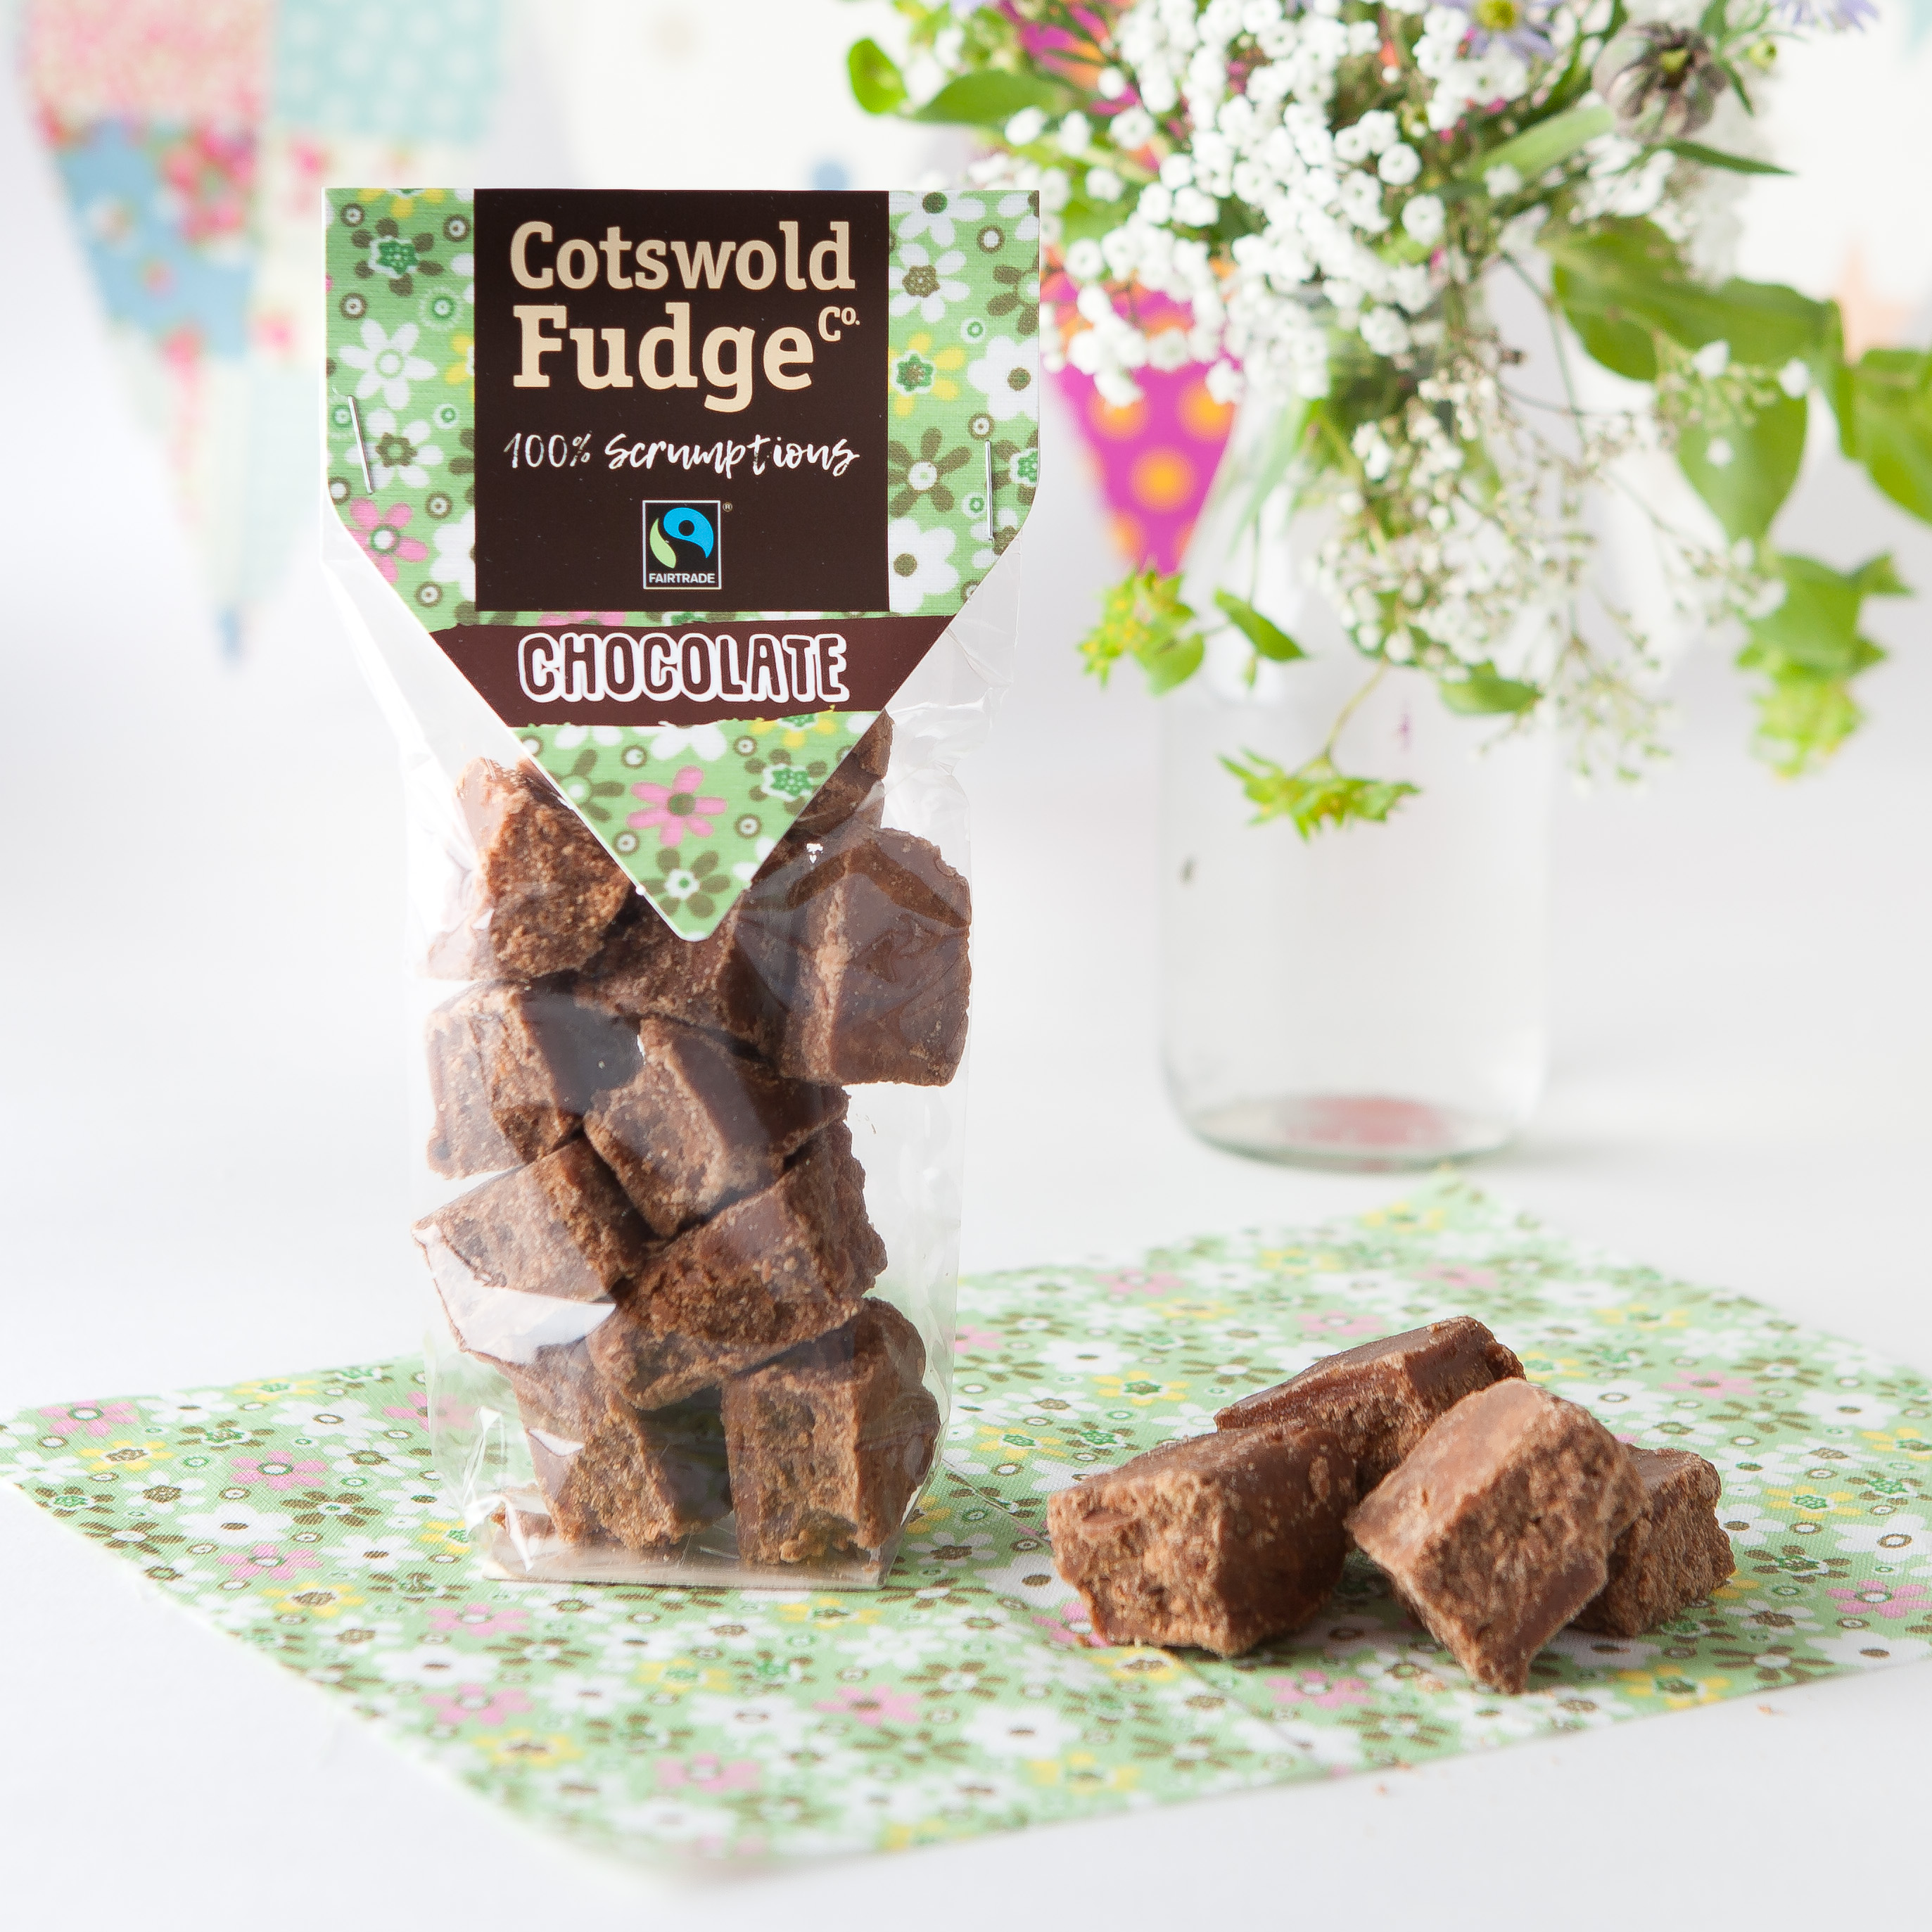 Cotswold Fudge Co Chocolate